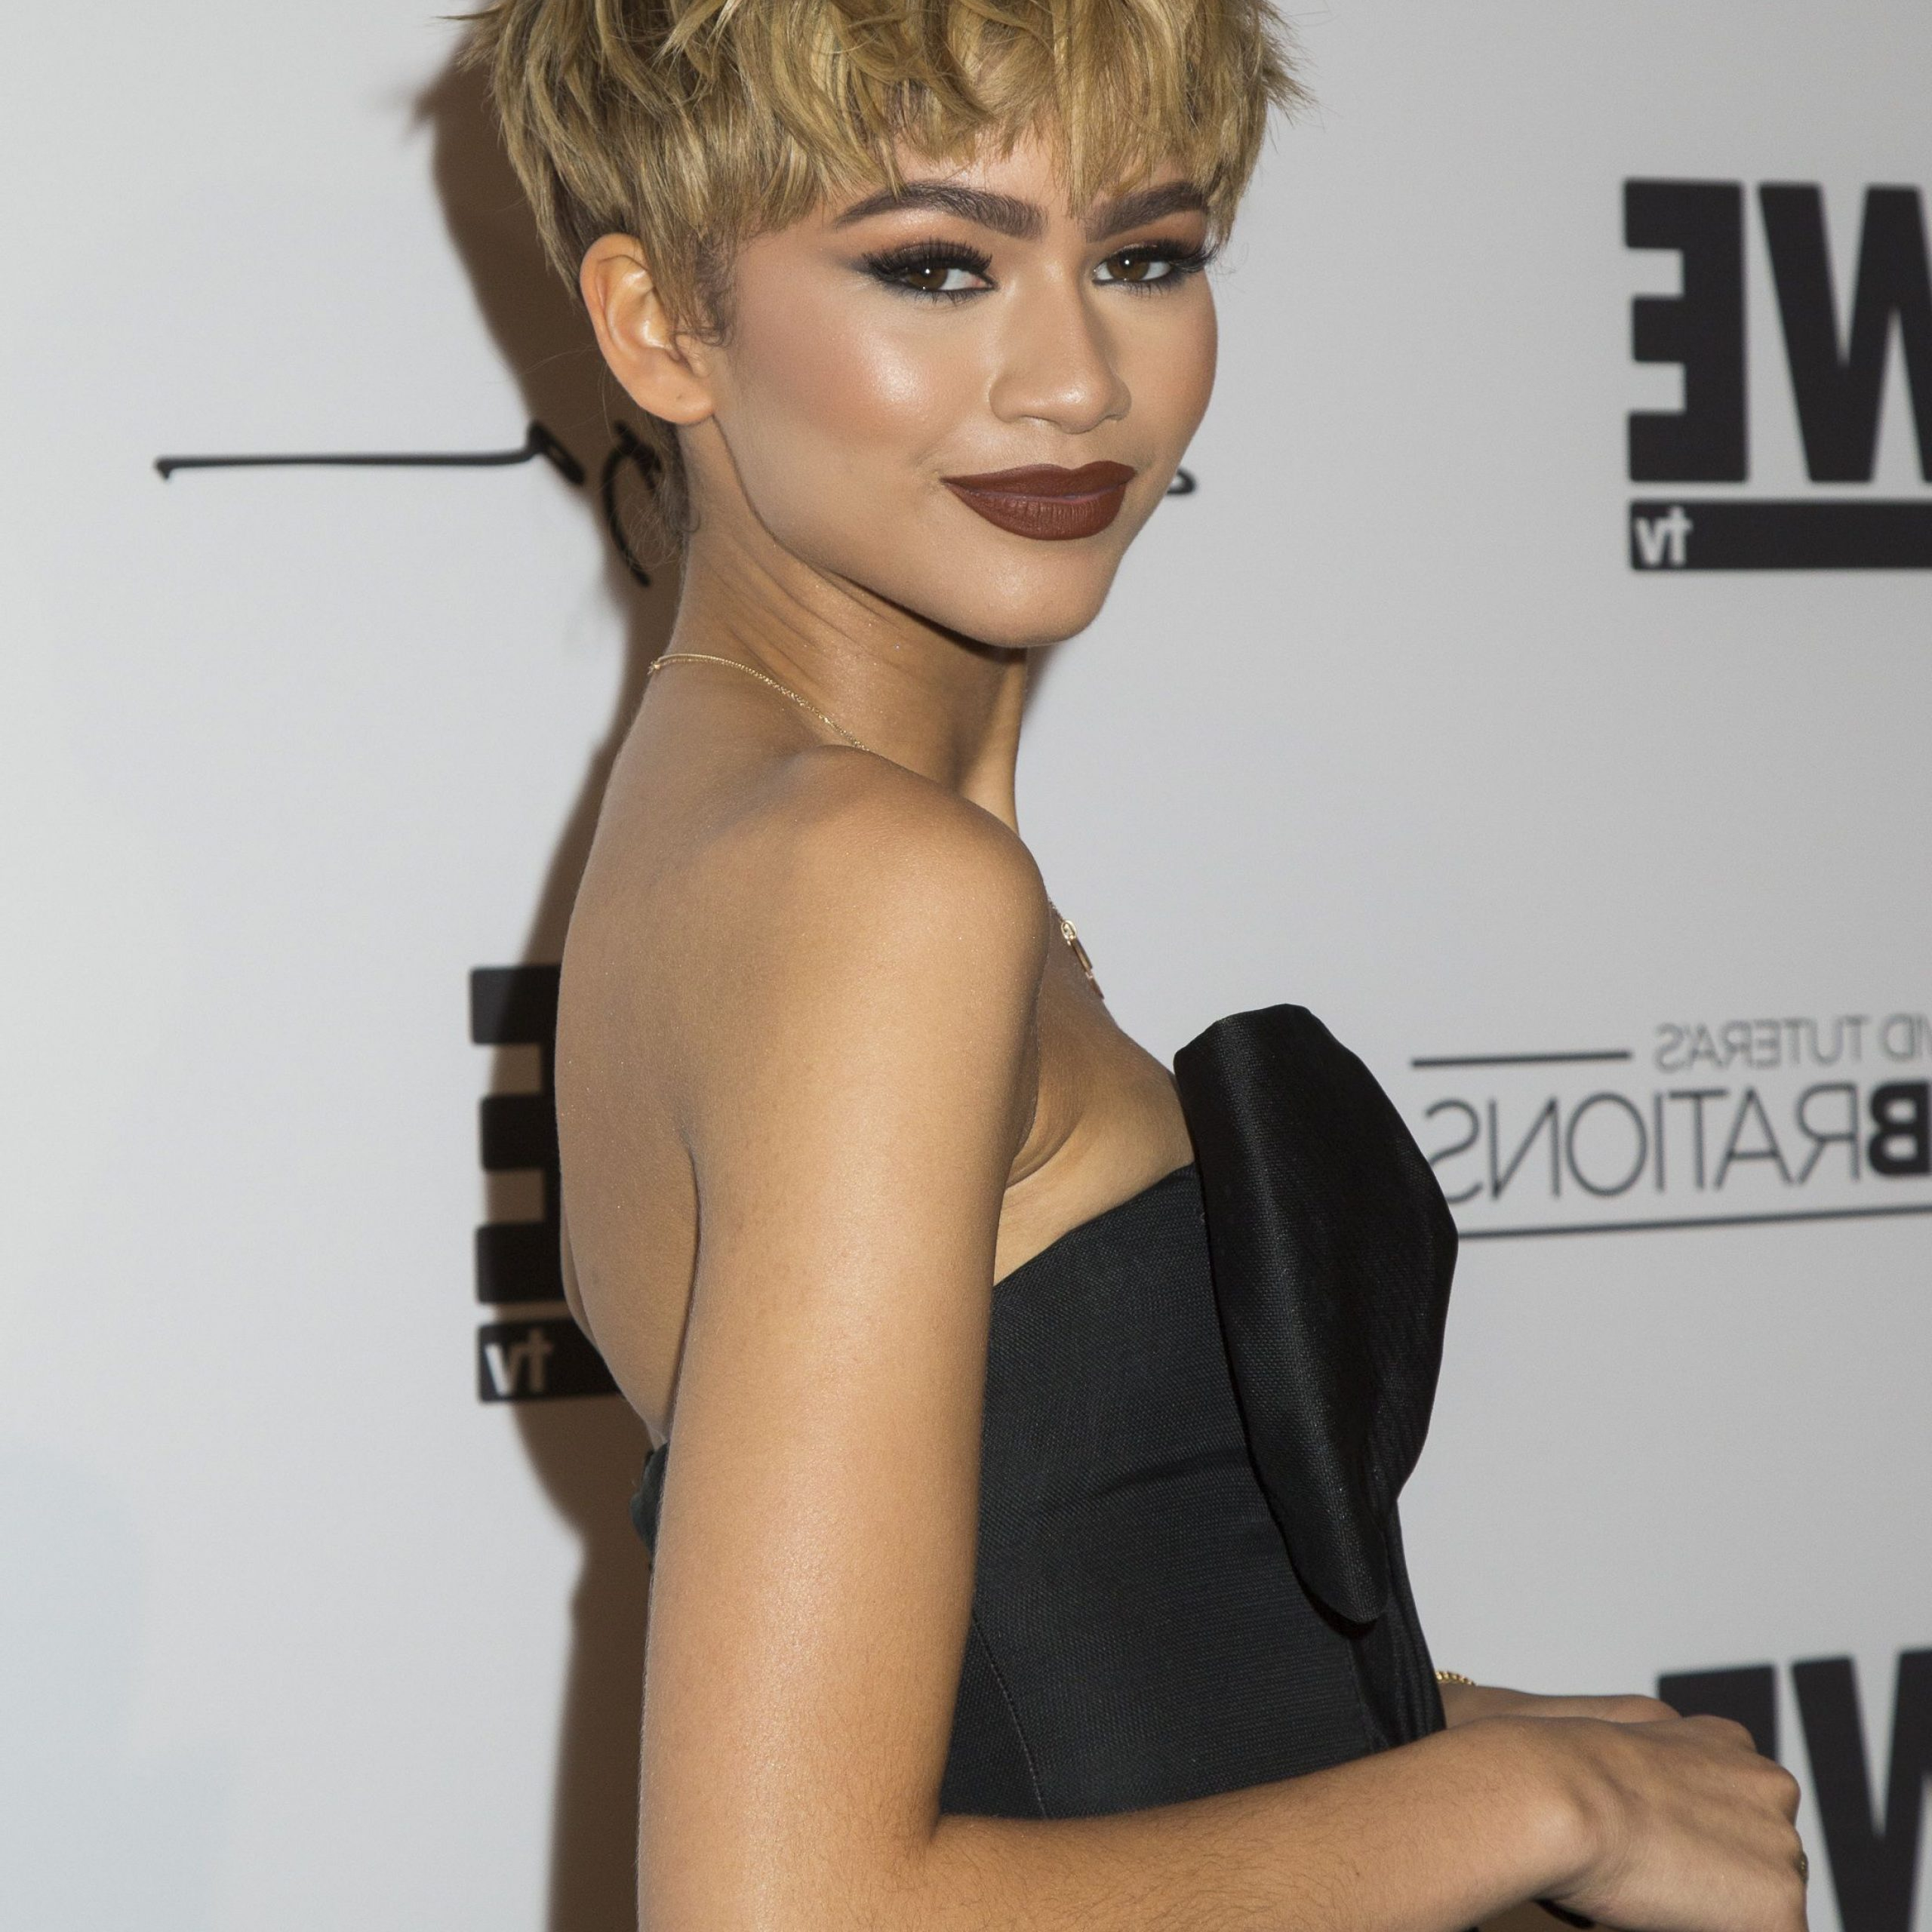 70 Best Pixie Cut Hairstyle Ideas 2019 – Cute Celebrity Pertaining To Messy Highlighted Pixie Haircuts With Long Side Bangs (View 18 of 20)